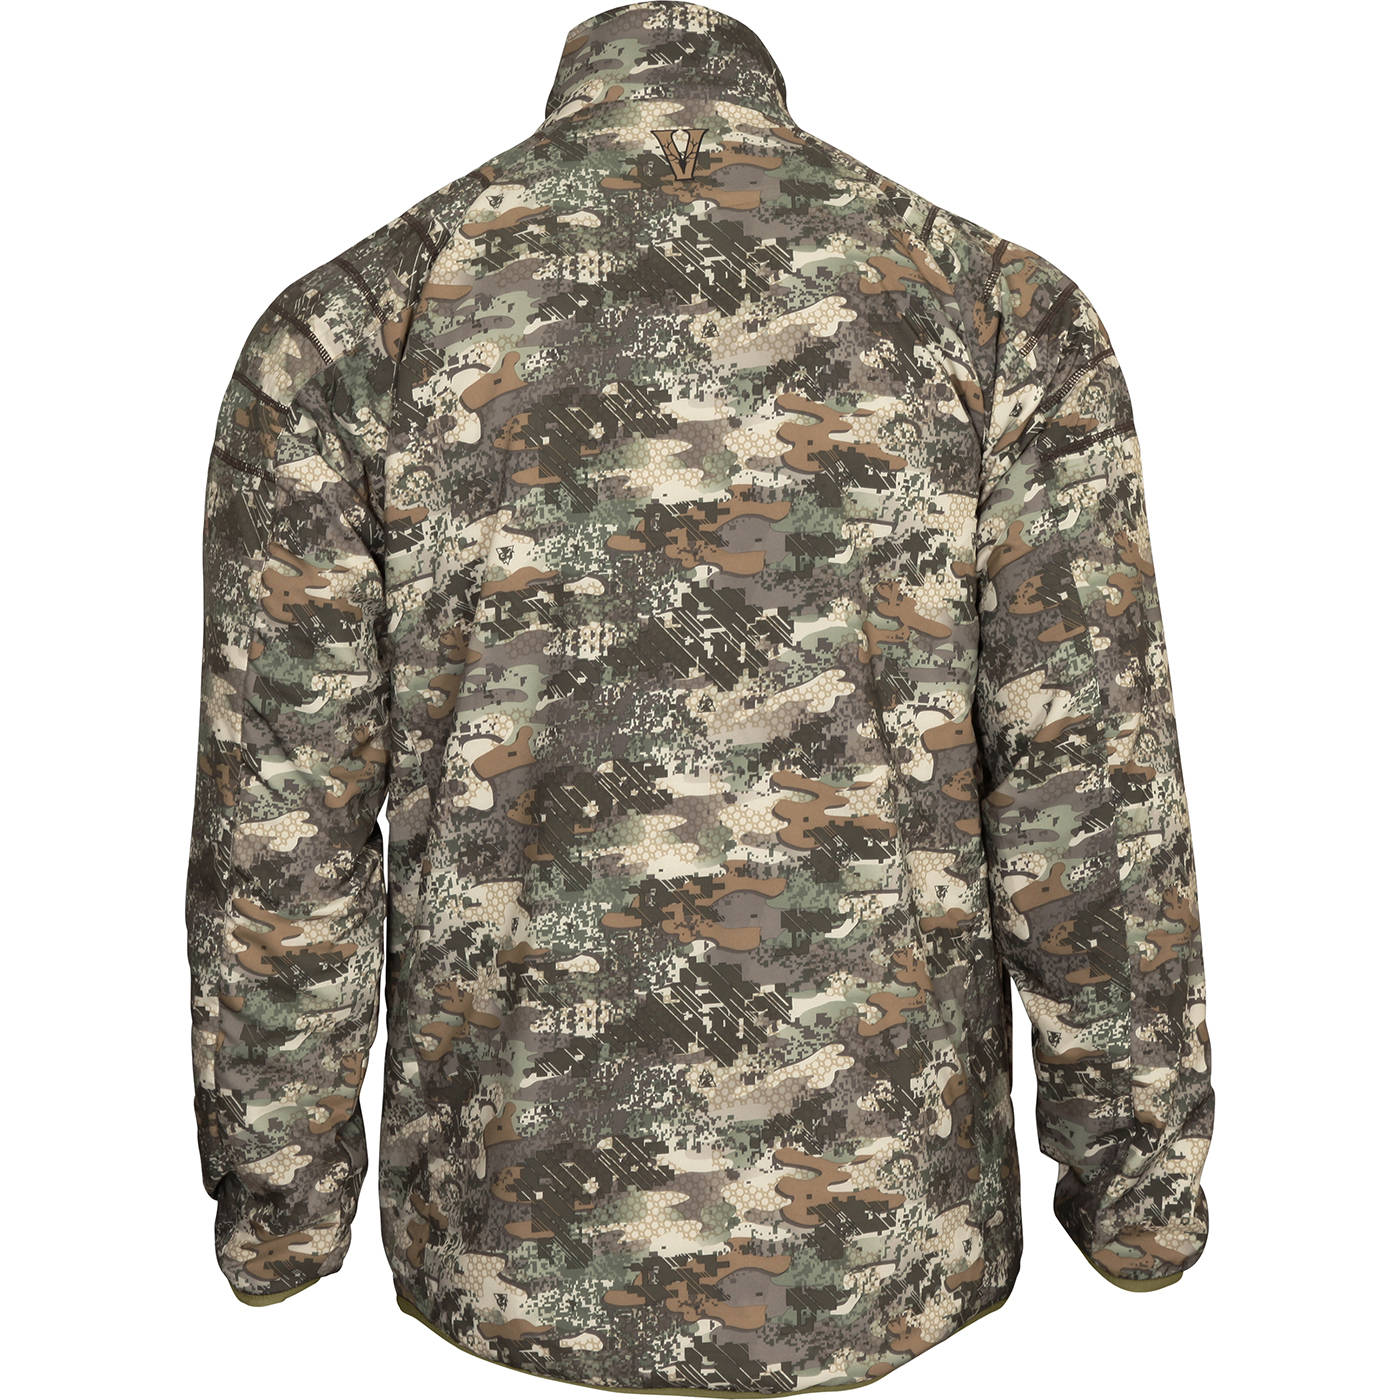 7a3689f48 Images. Rocky Venator 60G Insulated Stretch Jacket